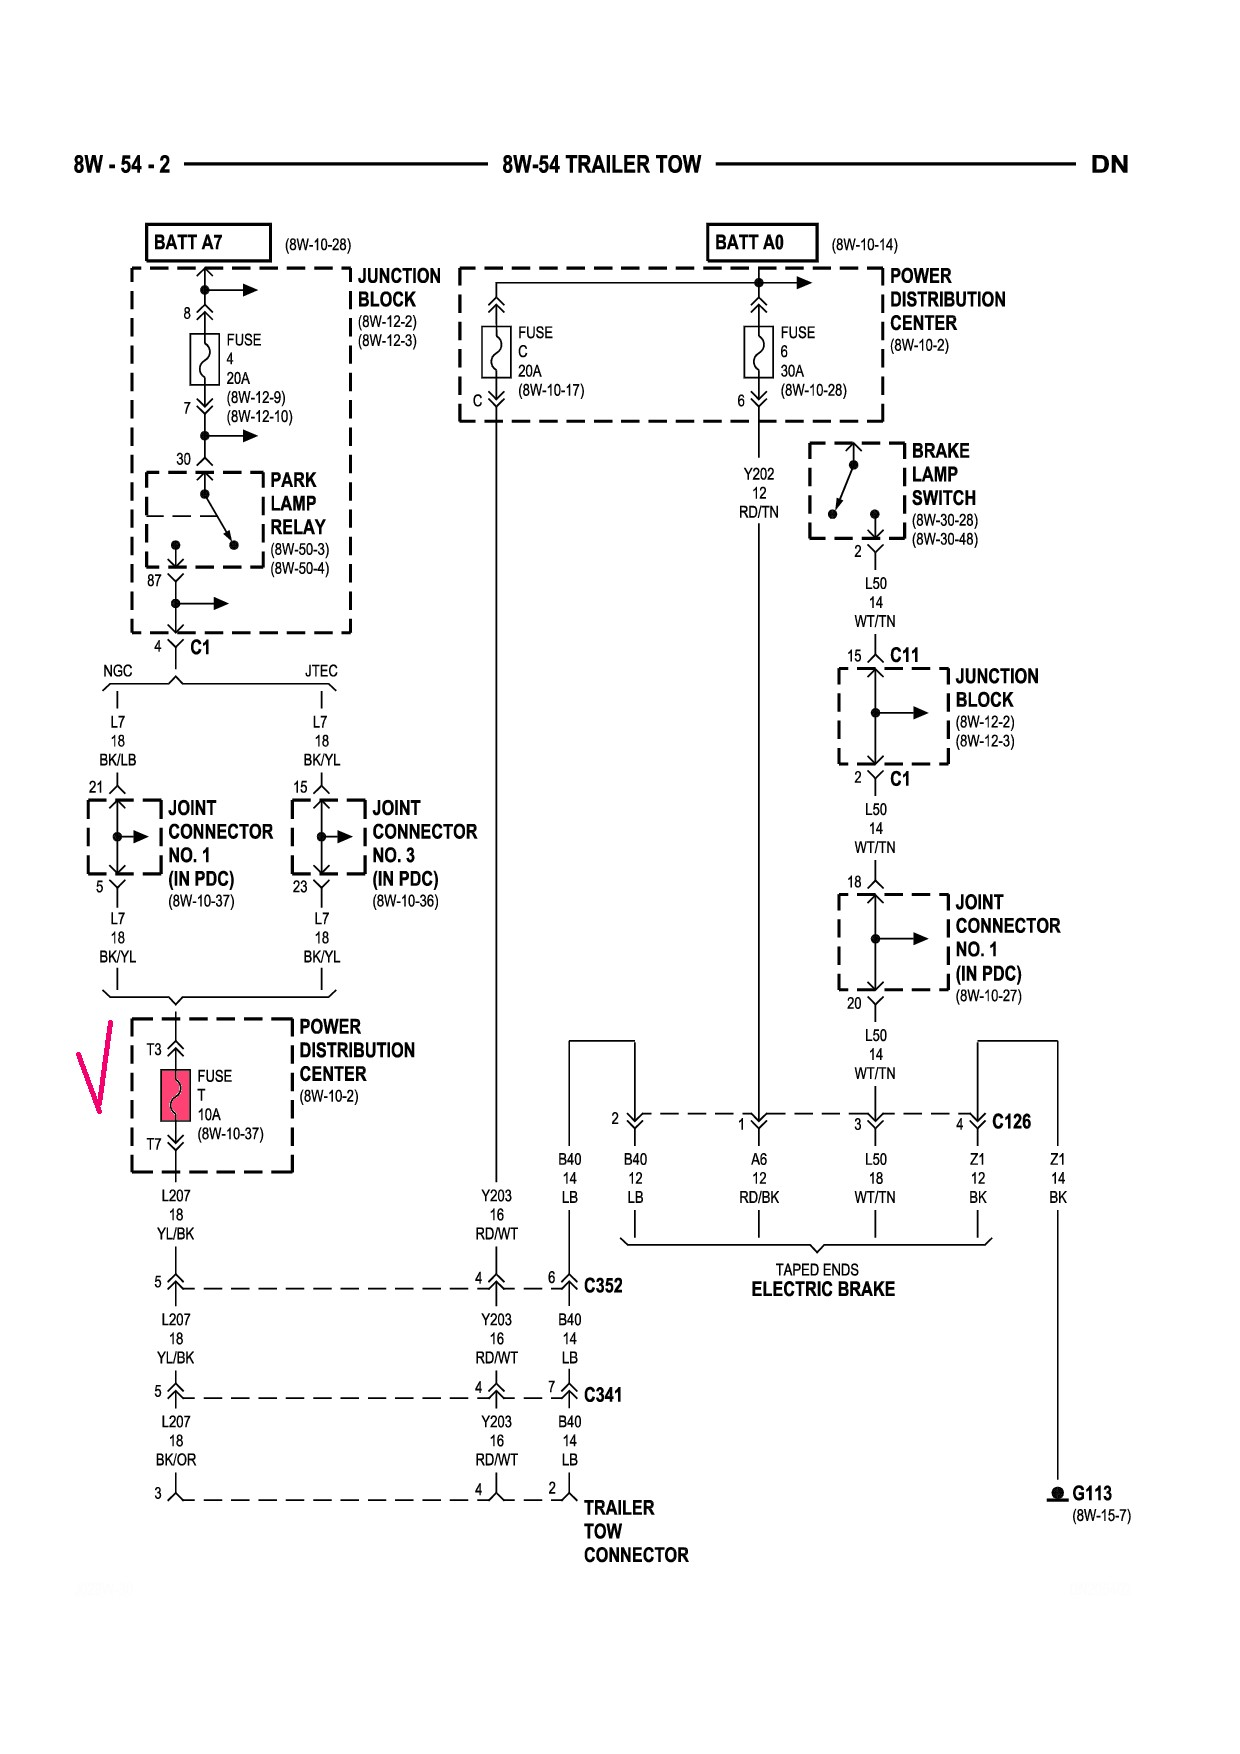 2000 Dodge Durango Wiring Diagram Dakota Headlight Blower Motor Best